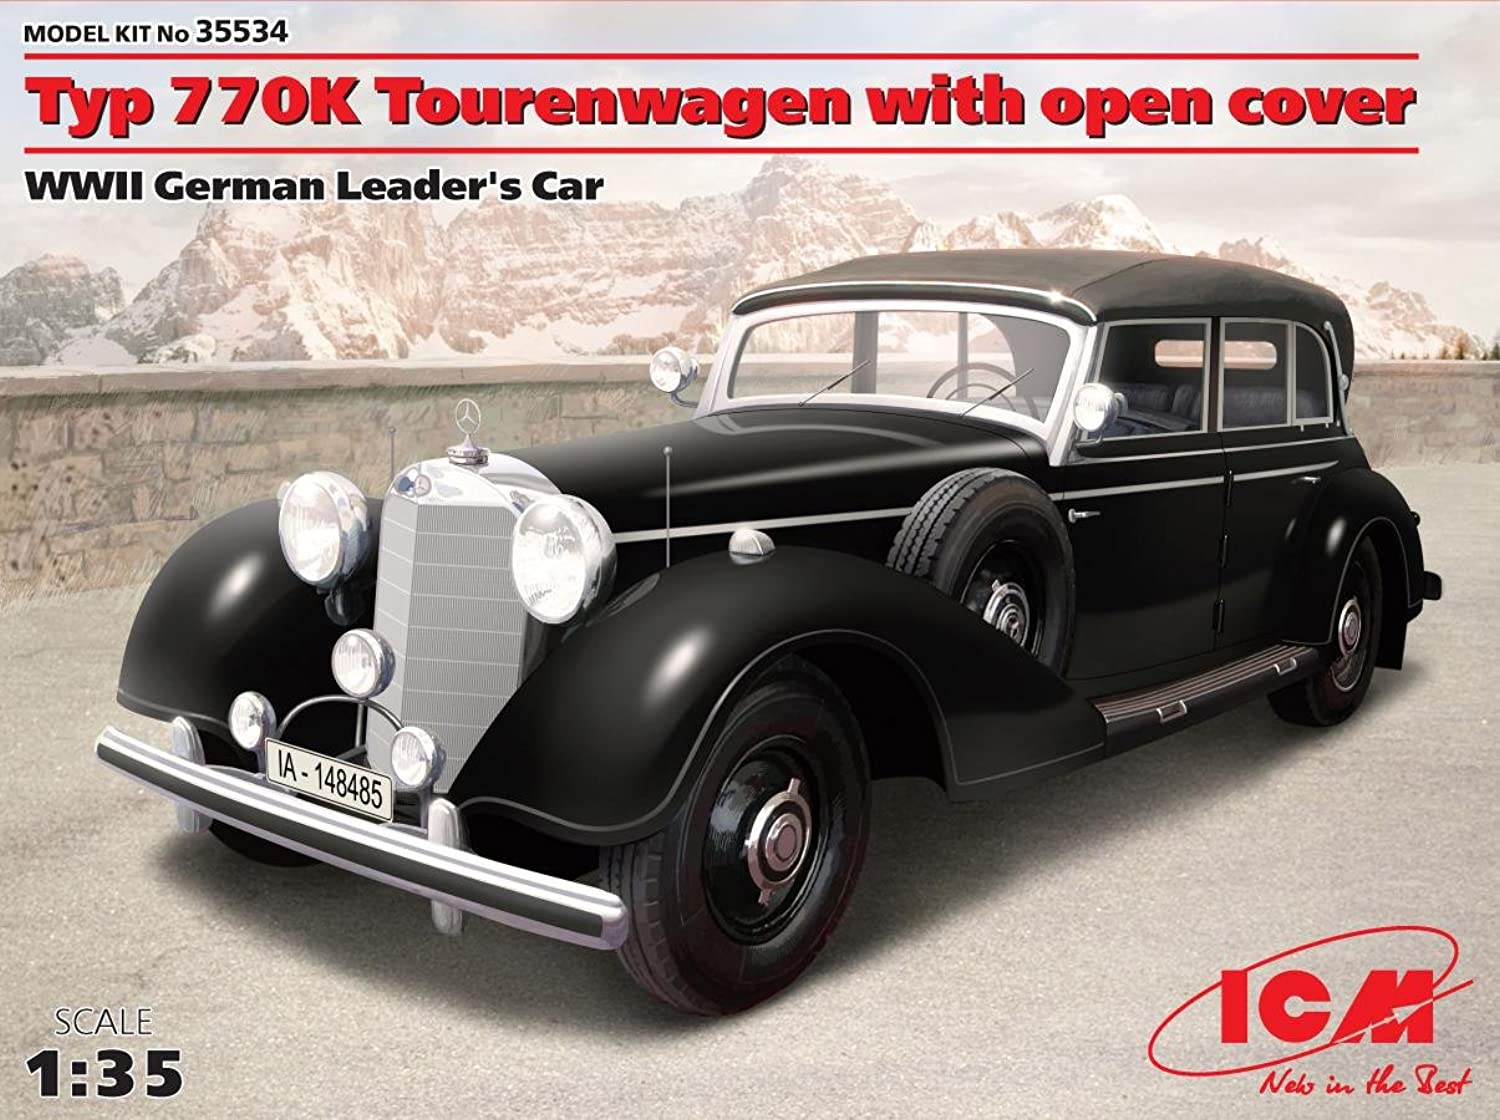 ICM Models Typ 770K Tourenwagen Car with Open Cover